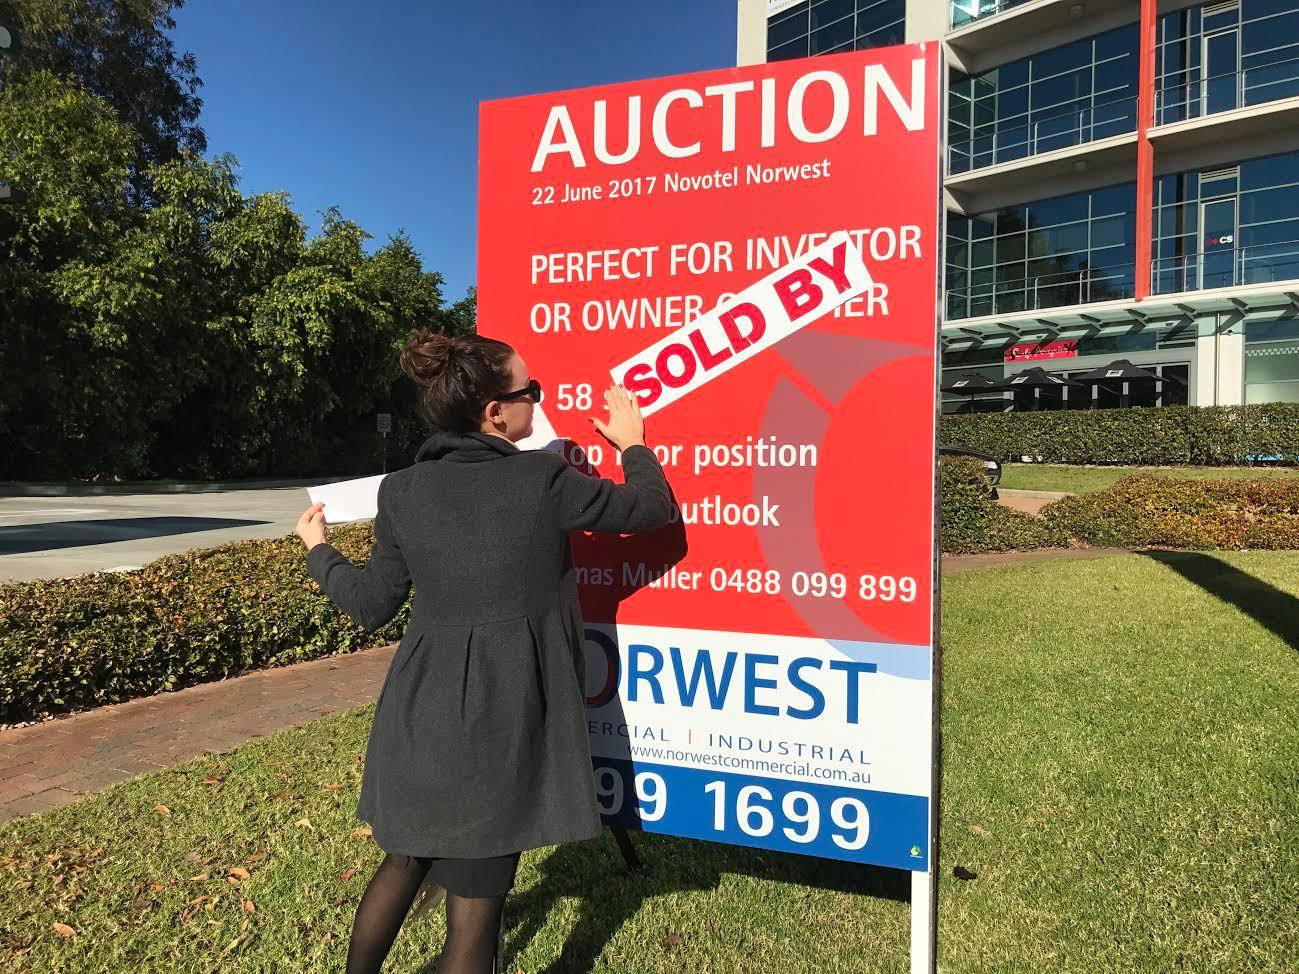 CALLING PROPERTY OWNERS, BUYERS LEFT HUNGRY WAITING FOR NEXT AUCTION